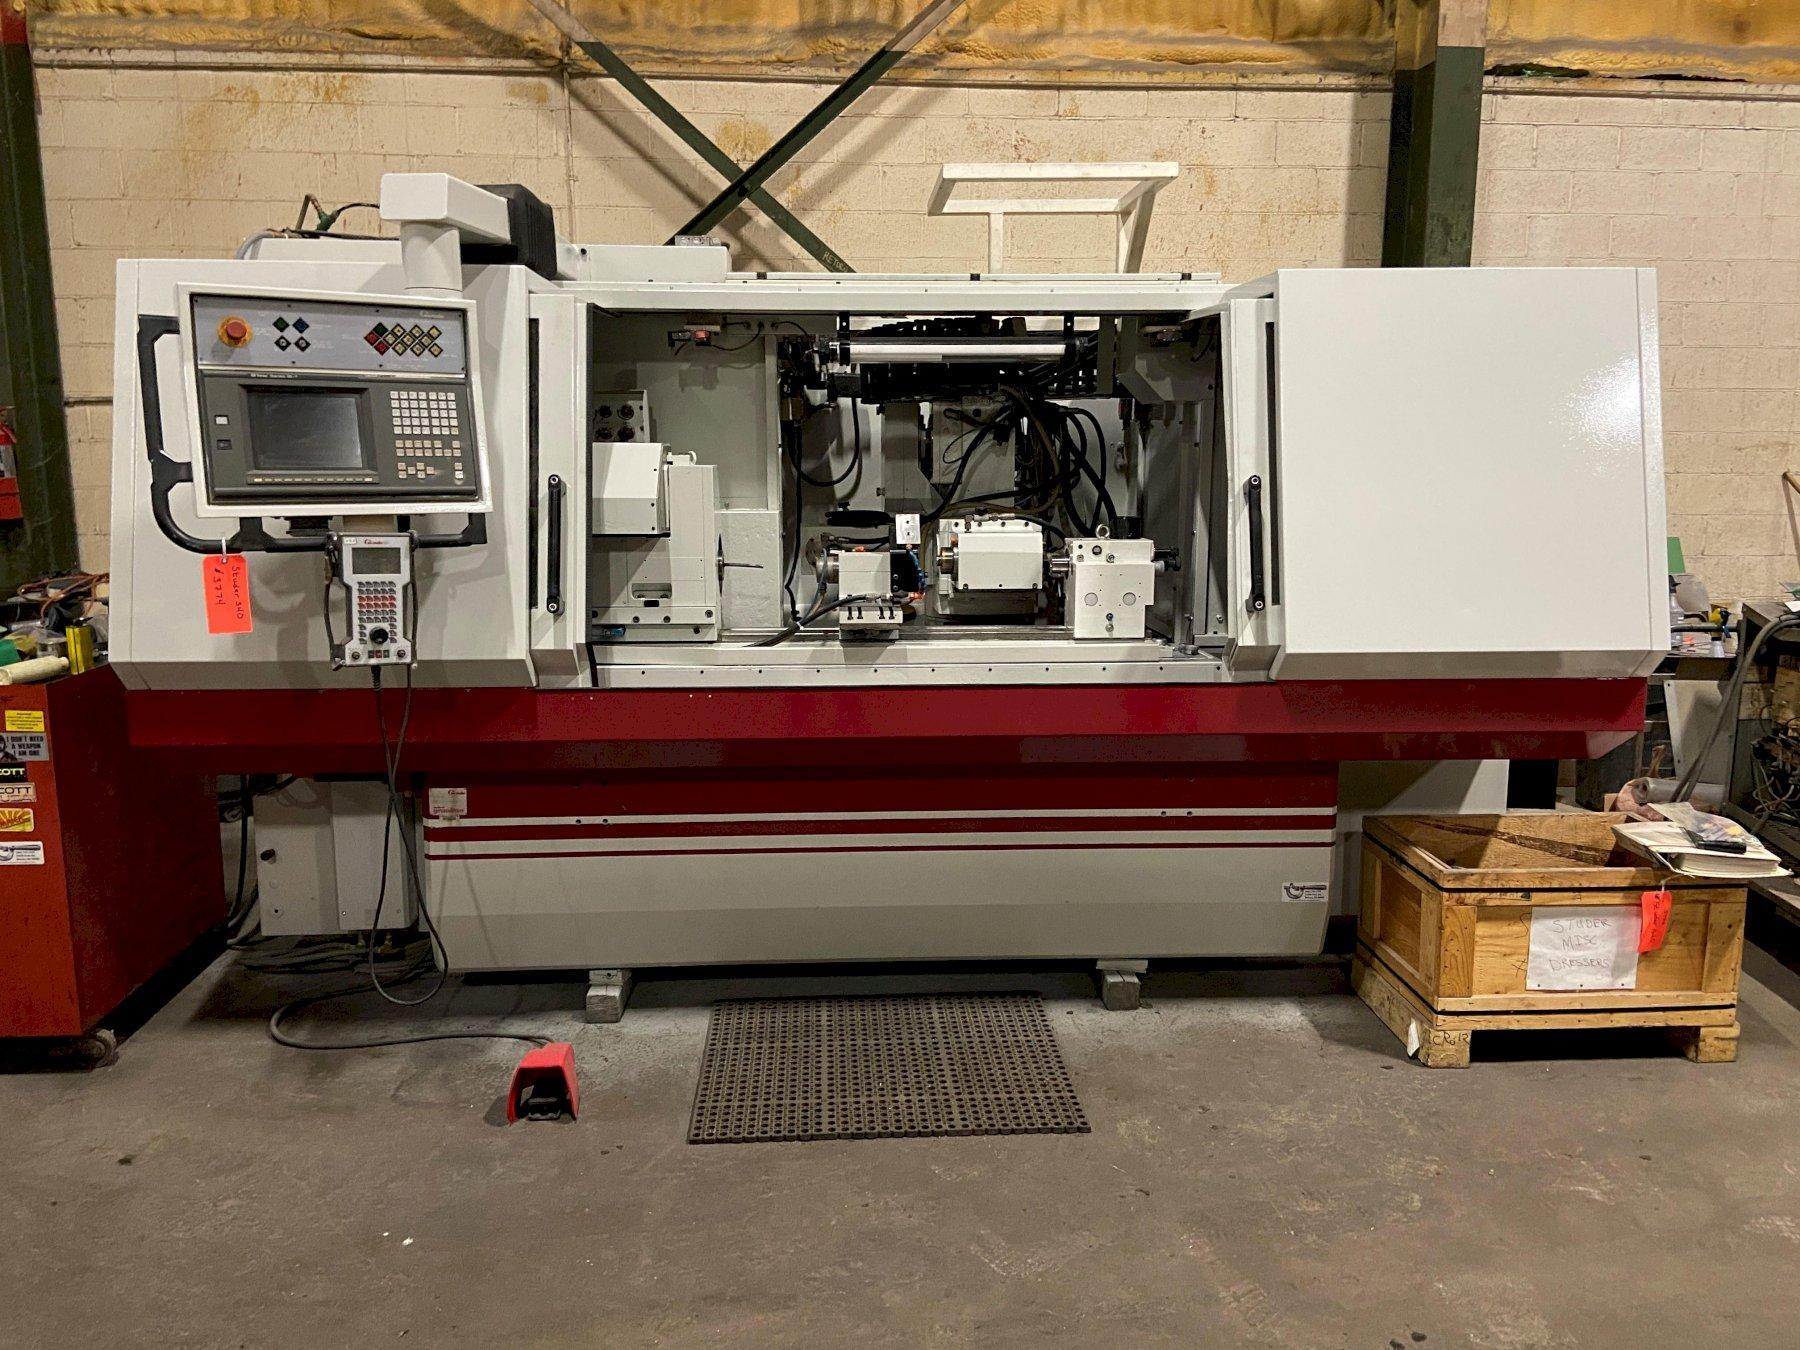 "Studer S-40 CNC Cylindrical Grinder, Fanuc 16T, 13.8"" x 39.4"" ,(2) I.D. Attachments, (1)20"" Dia Wheel, 10 Horsepower, Table Mounted Dresser, T/S,  Plunge, 1997"